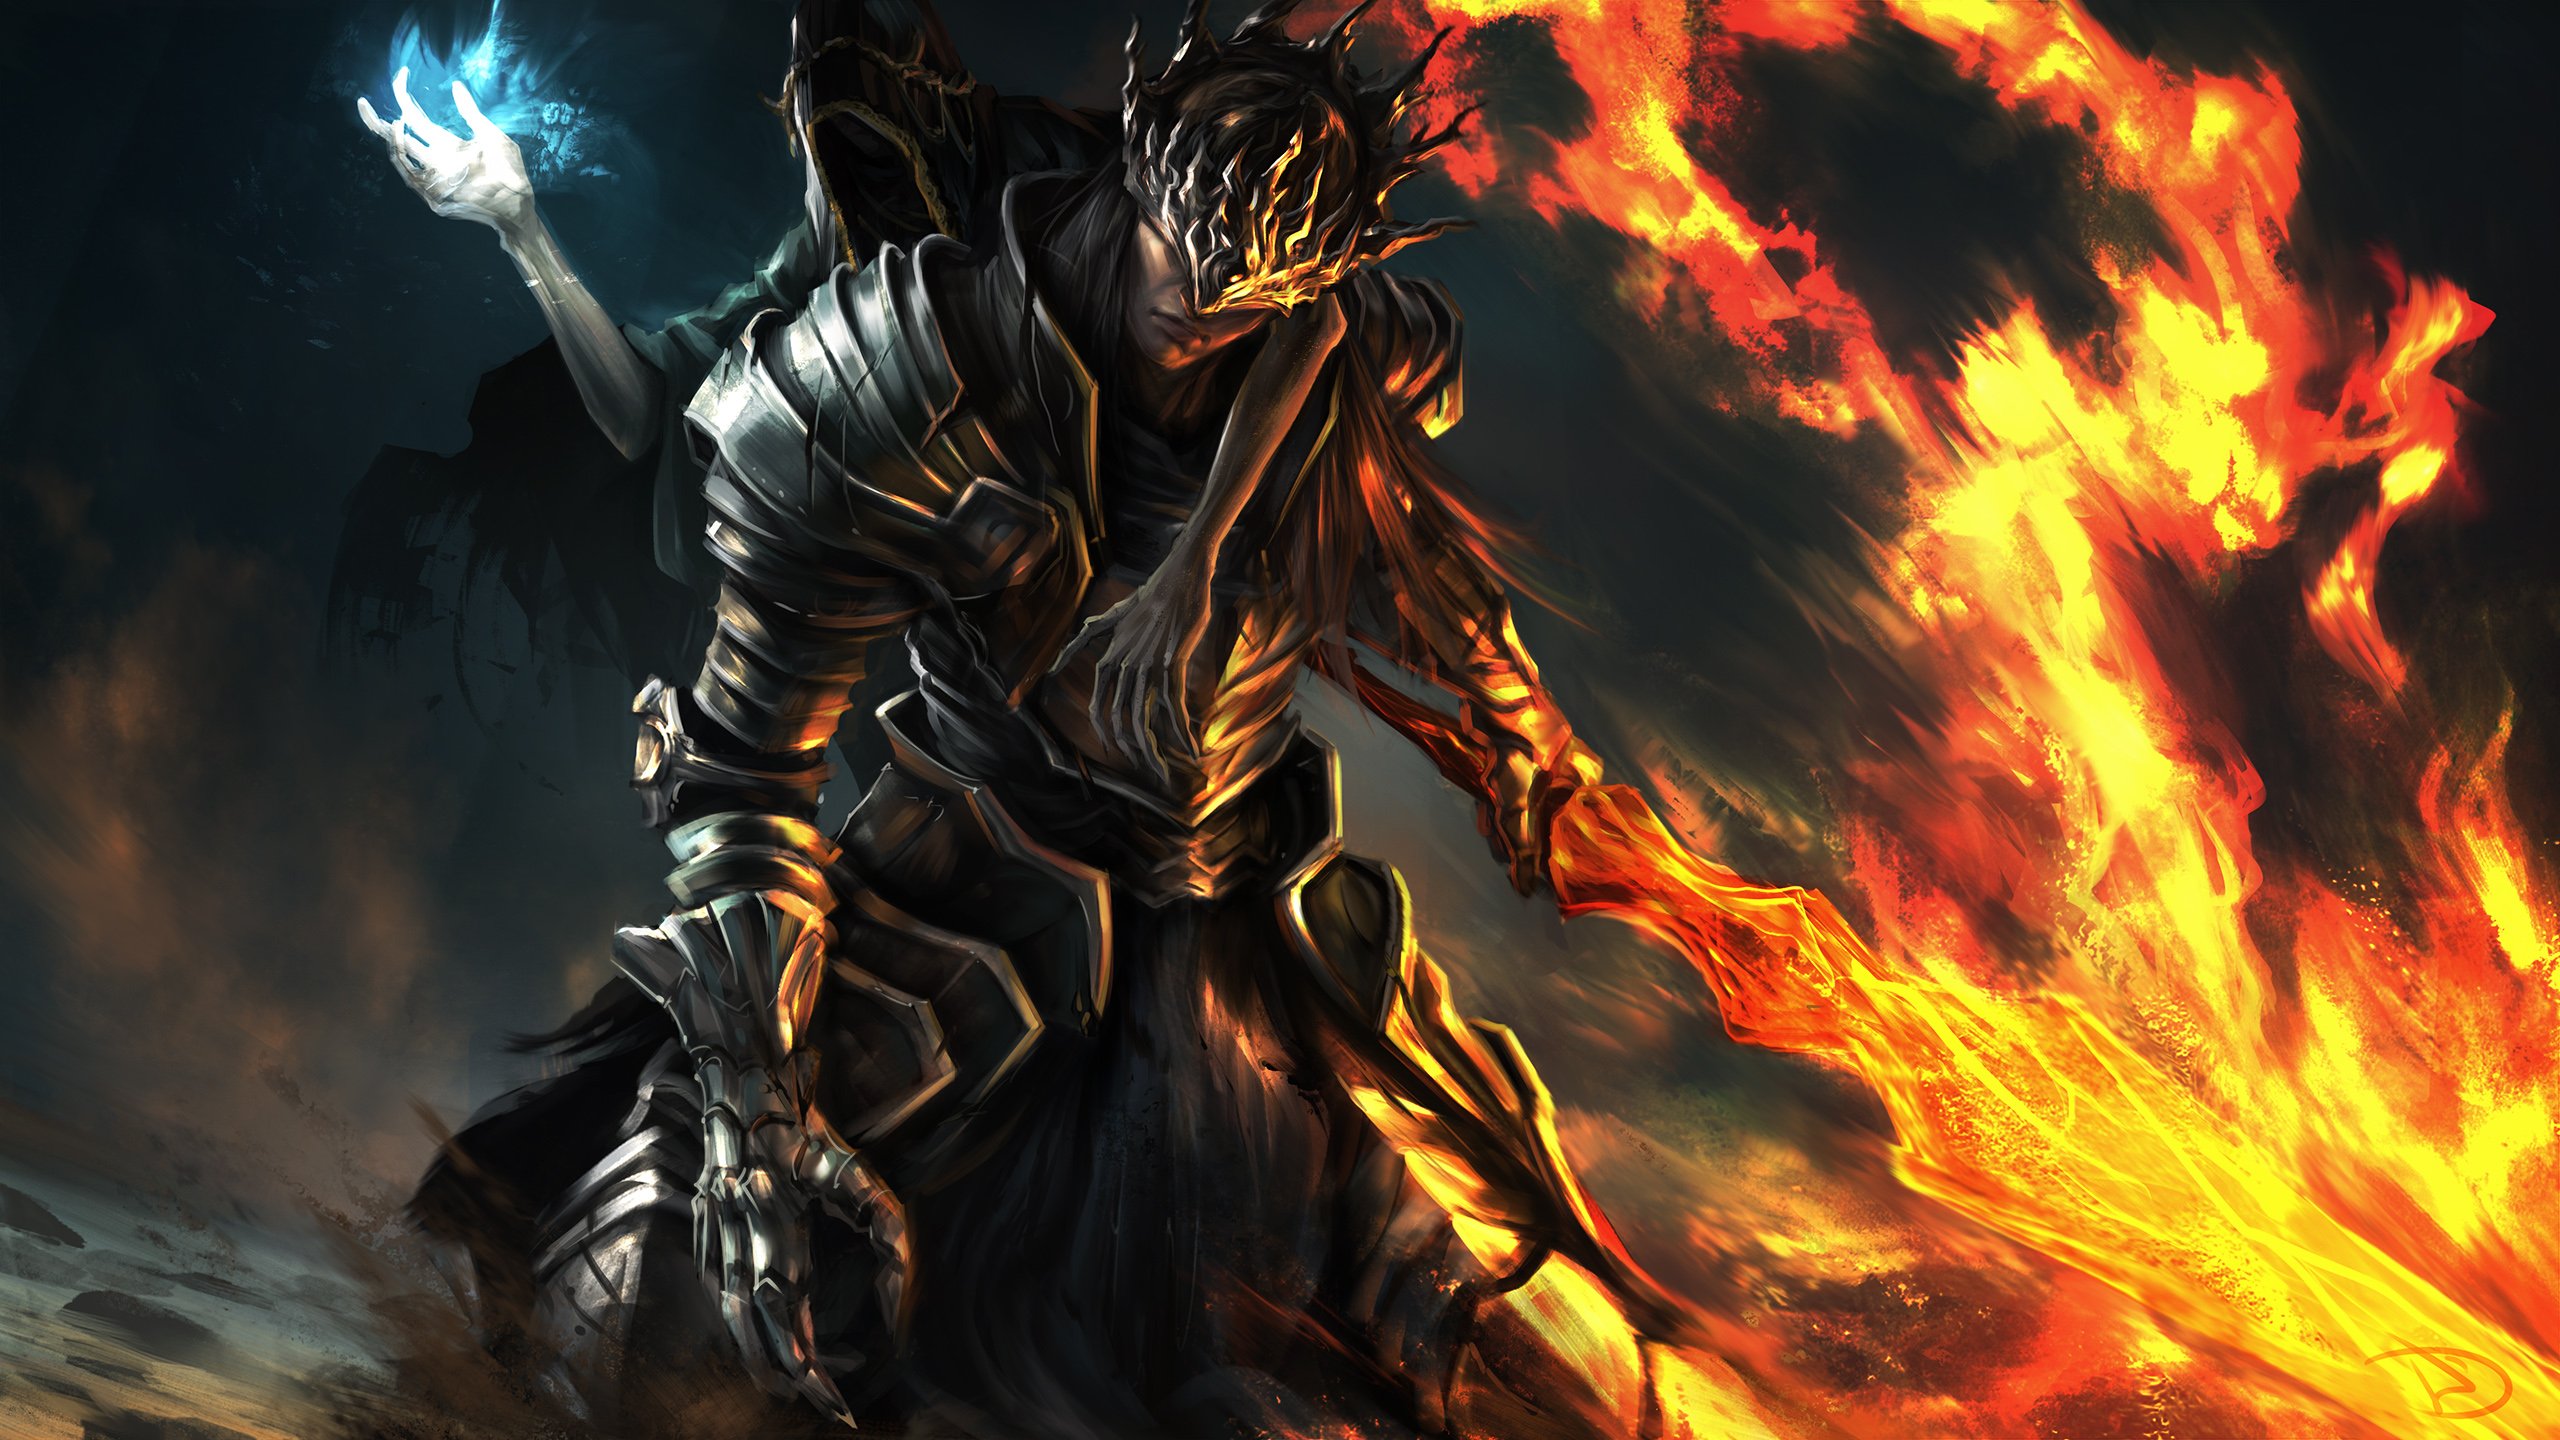 Dark Souls III HD Wallpaper